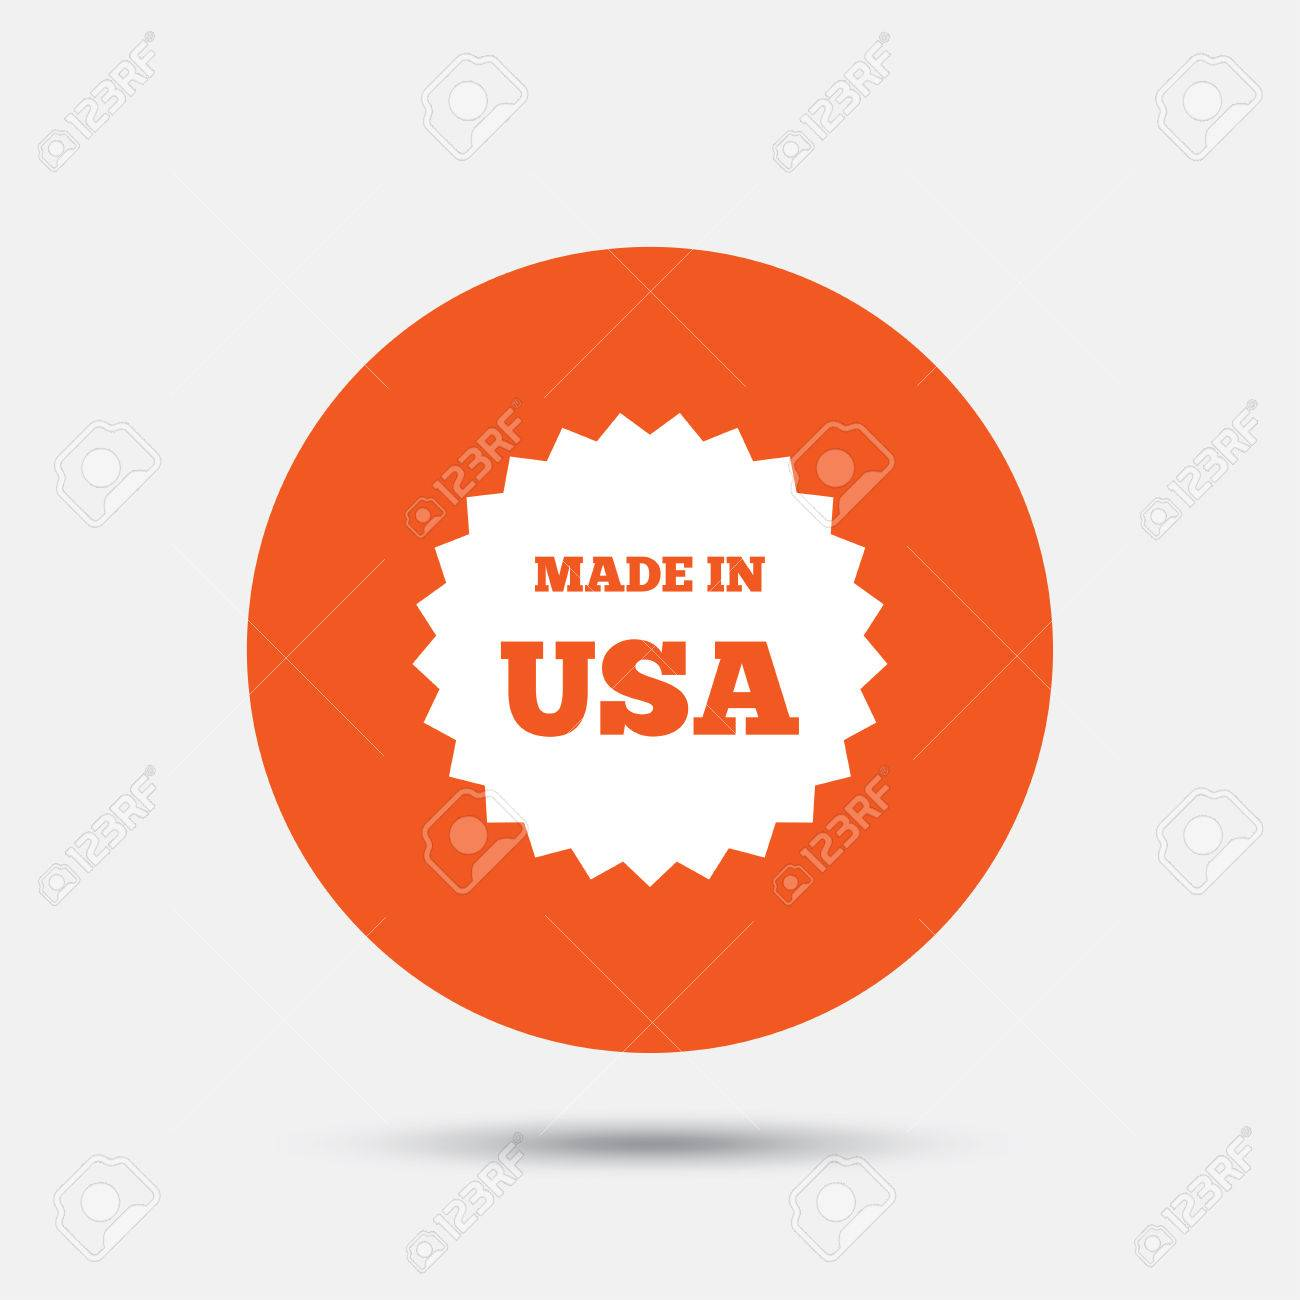 Made in the usa icon export production symbol product created in made in the usa icon export production symbol product created in america sign buycottarizona